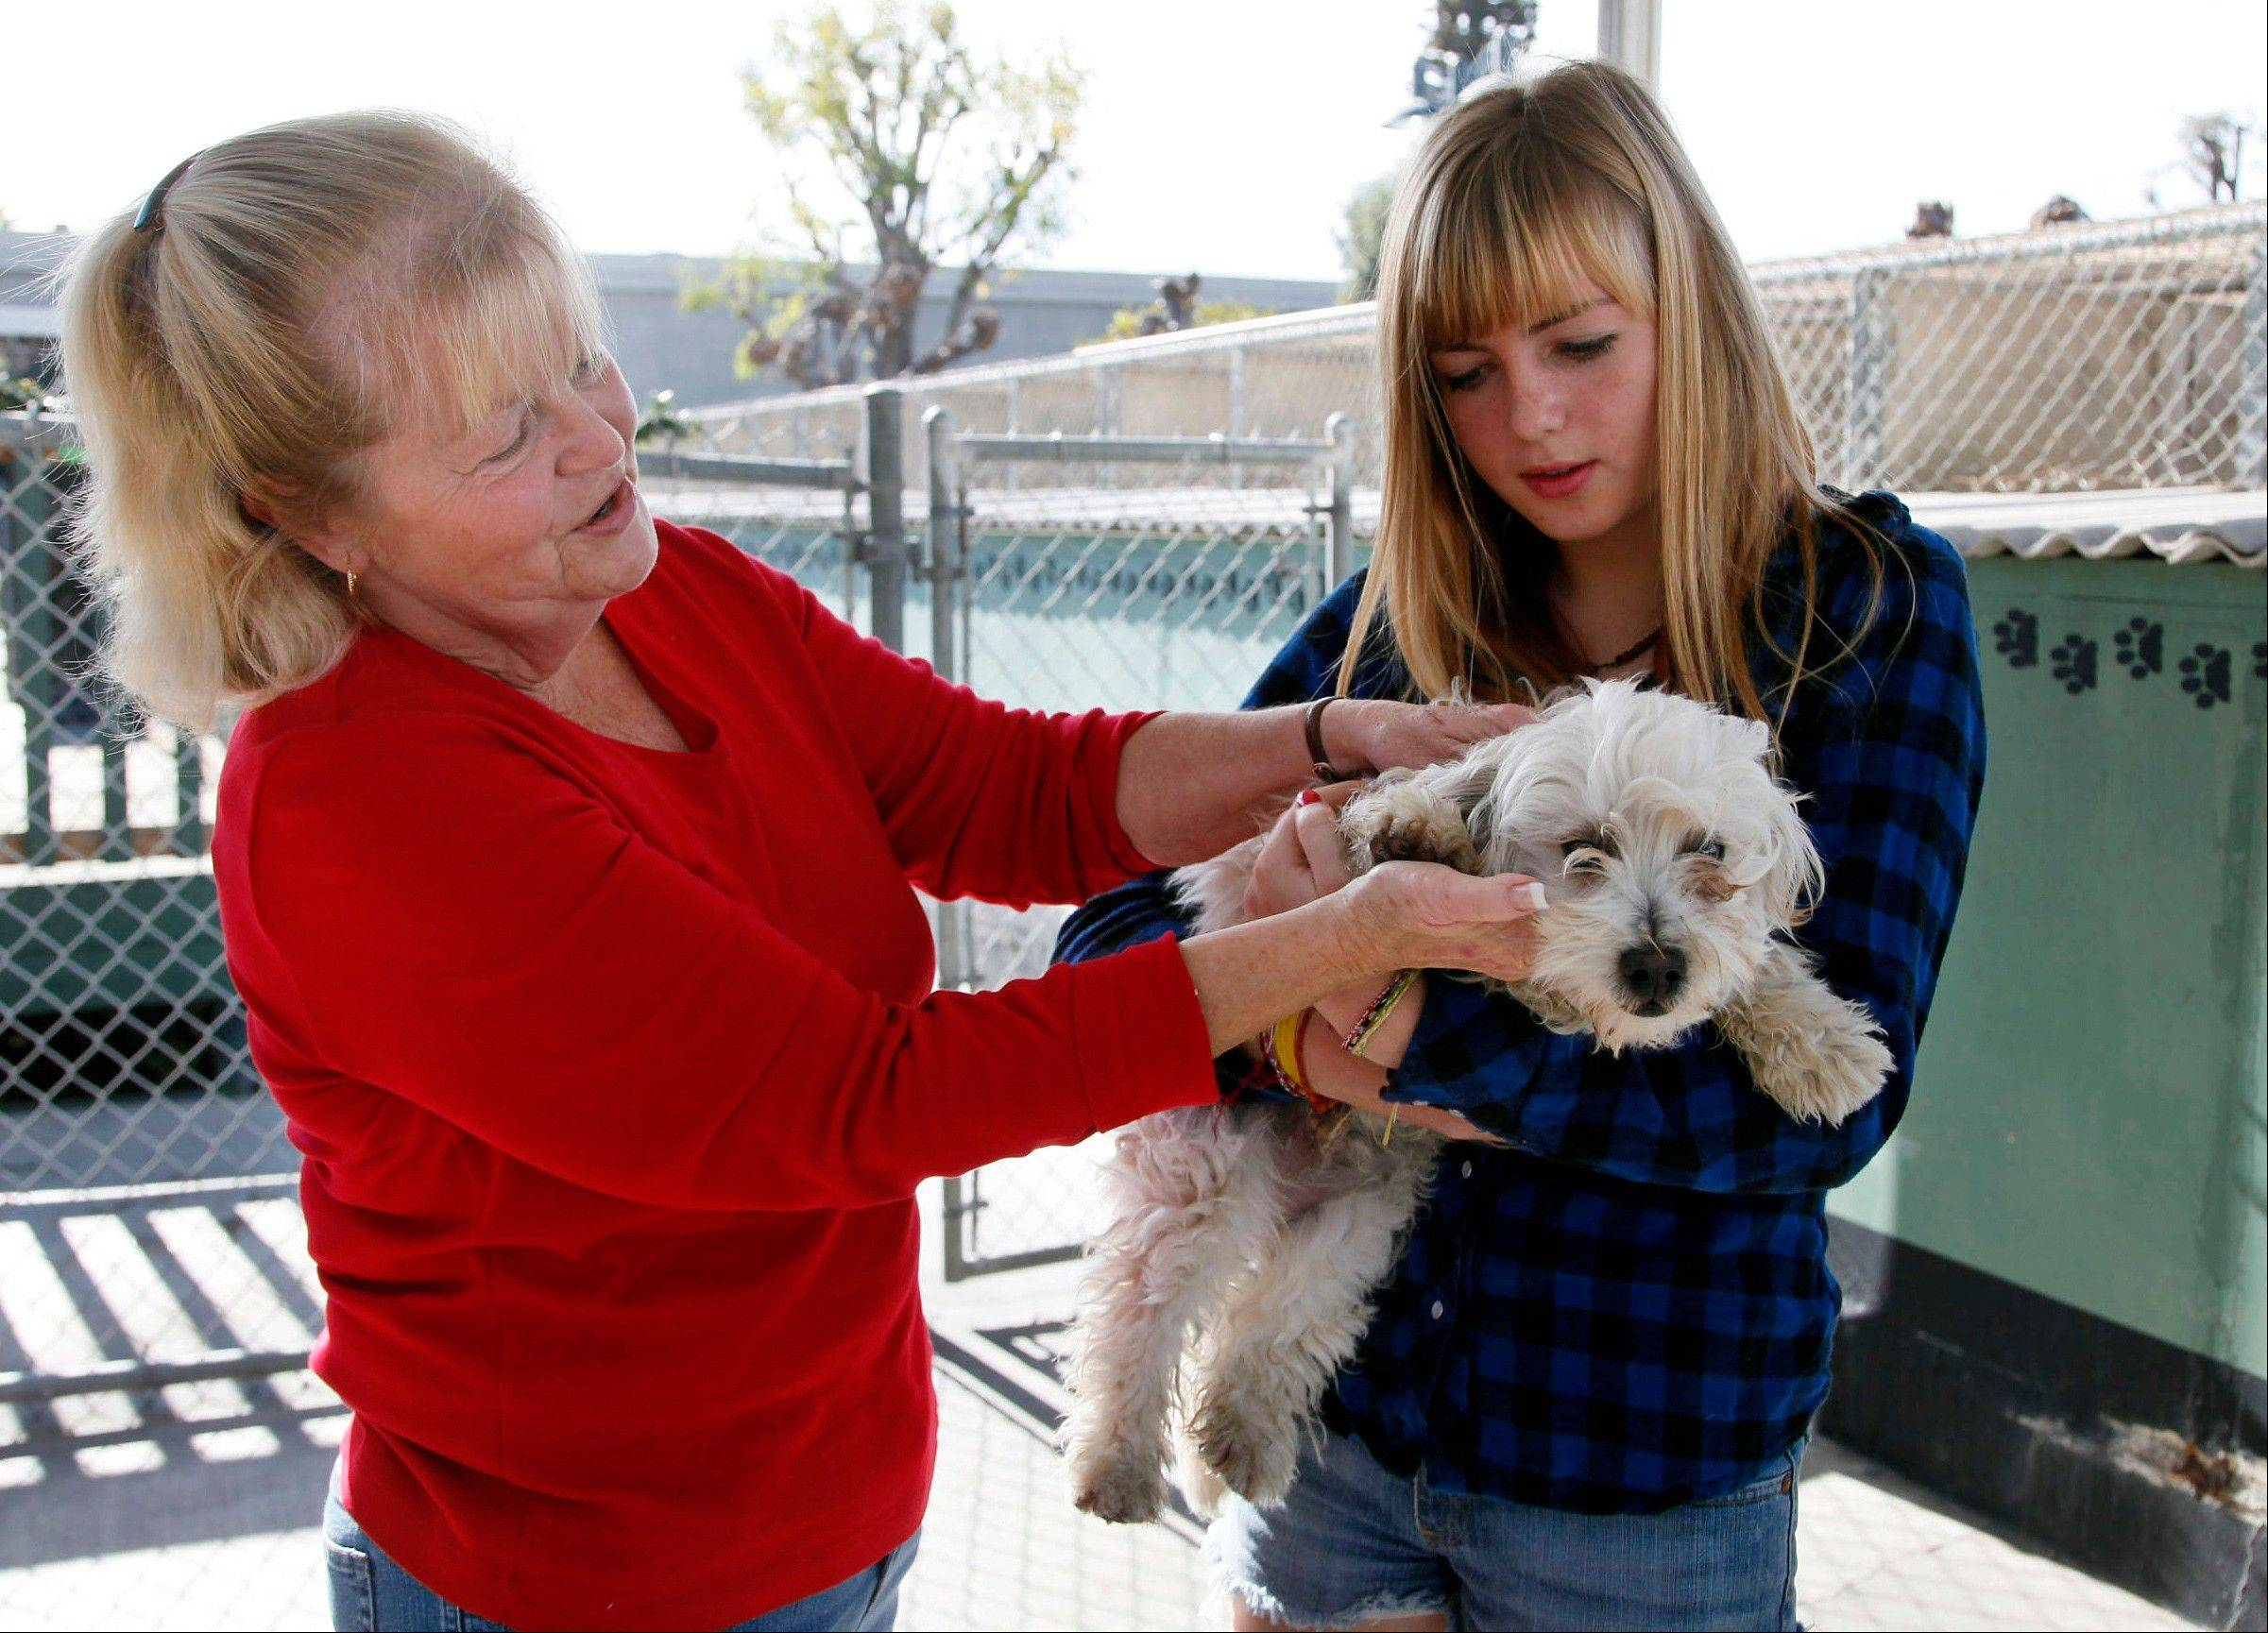 Carol Adams, left, and her daughter Michelle look into adopting a dog at the OC Animal Care shelter in Orange, Calif.